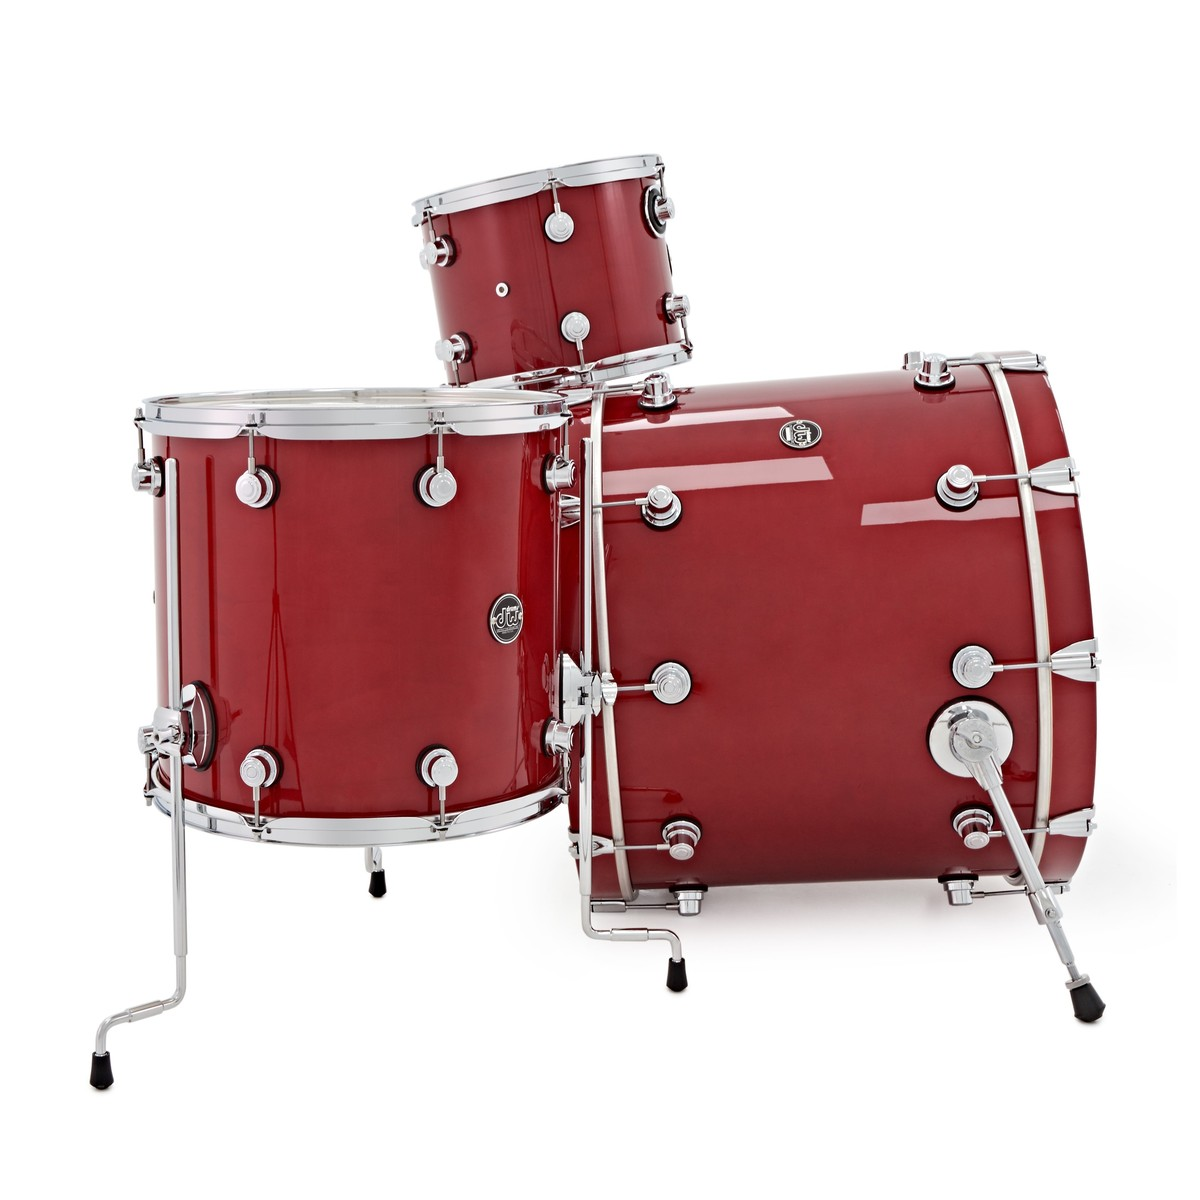 dw drums performance series 22 3 piece shell pack candy apple red at gear4music. Black Bedroom Furniture Sets. Home Design Ideas